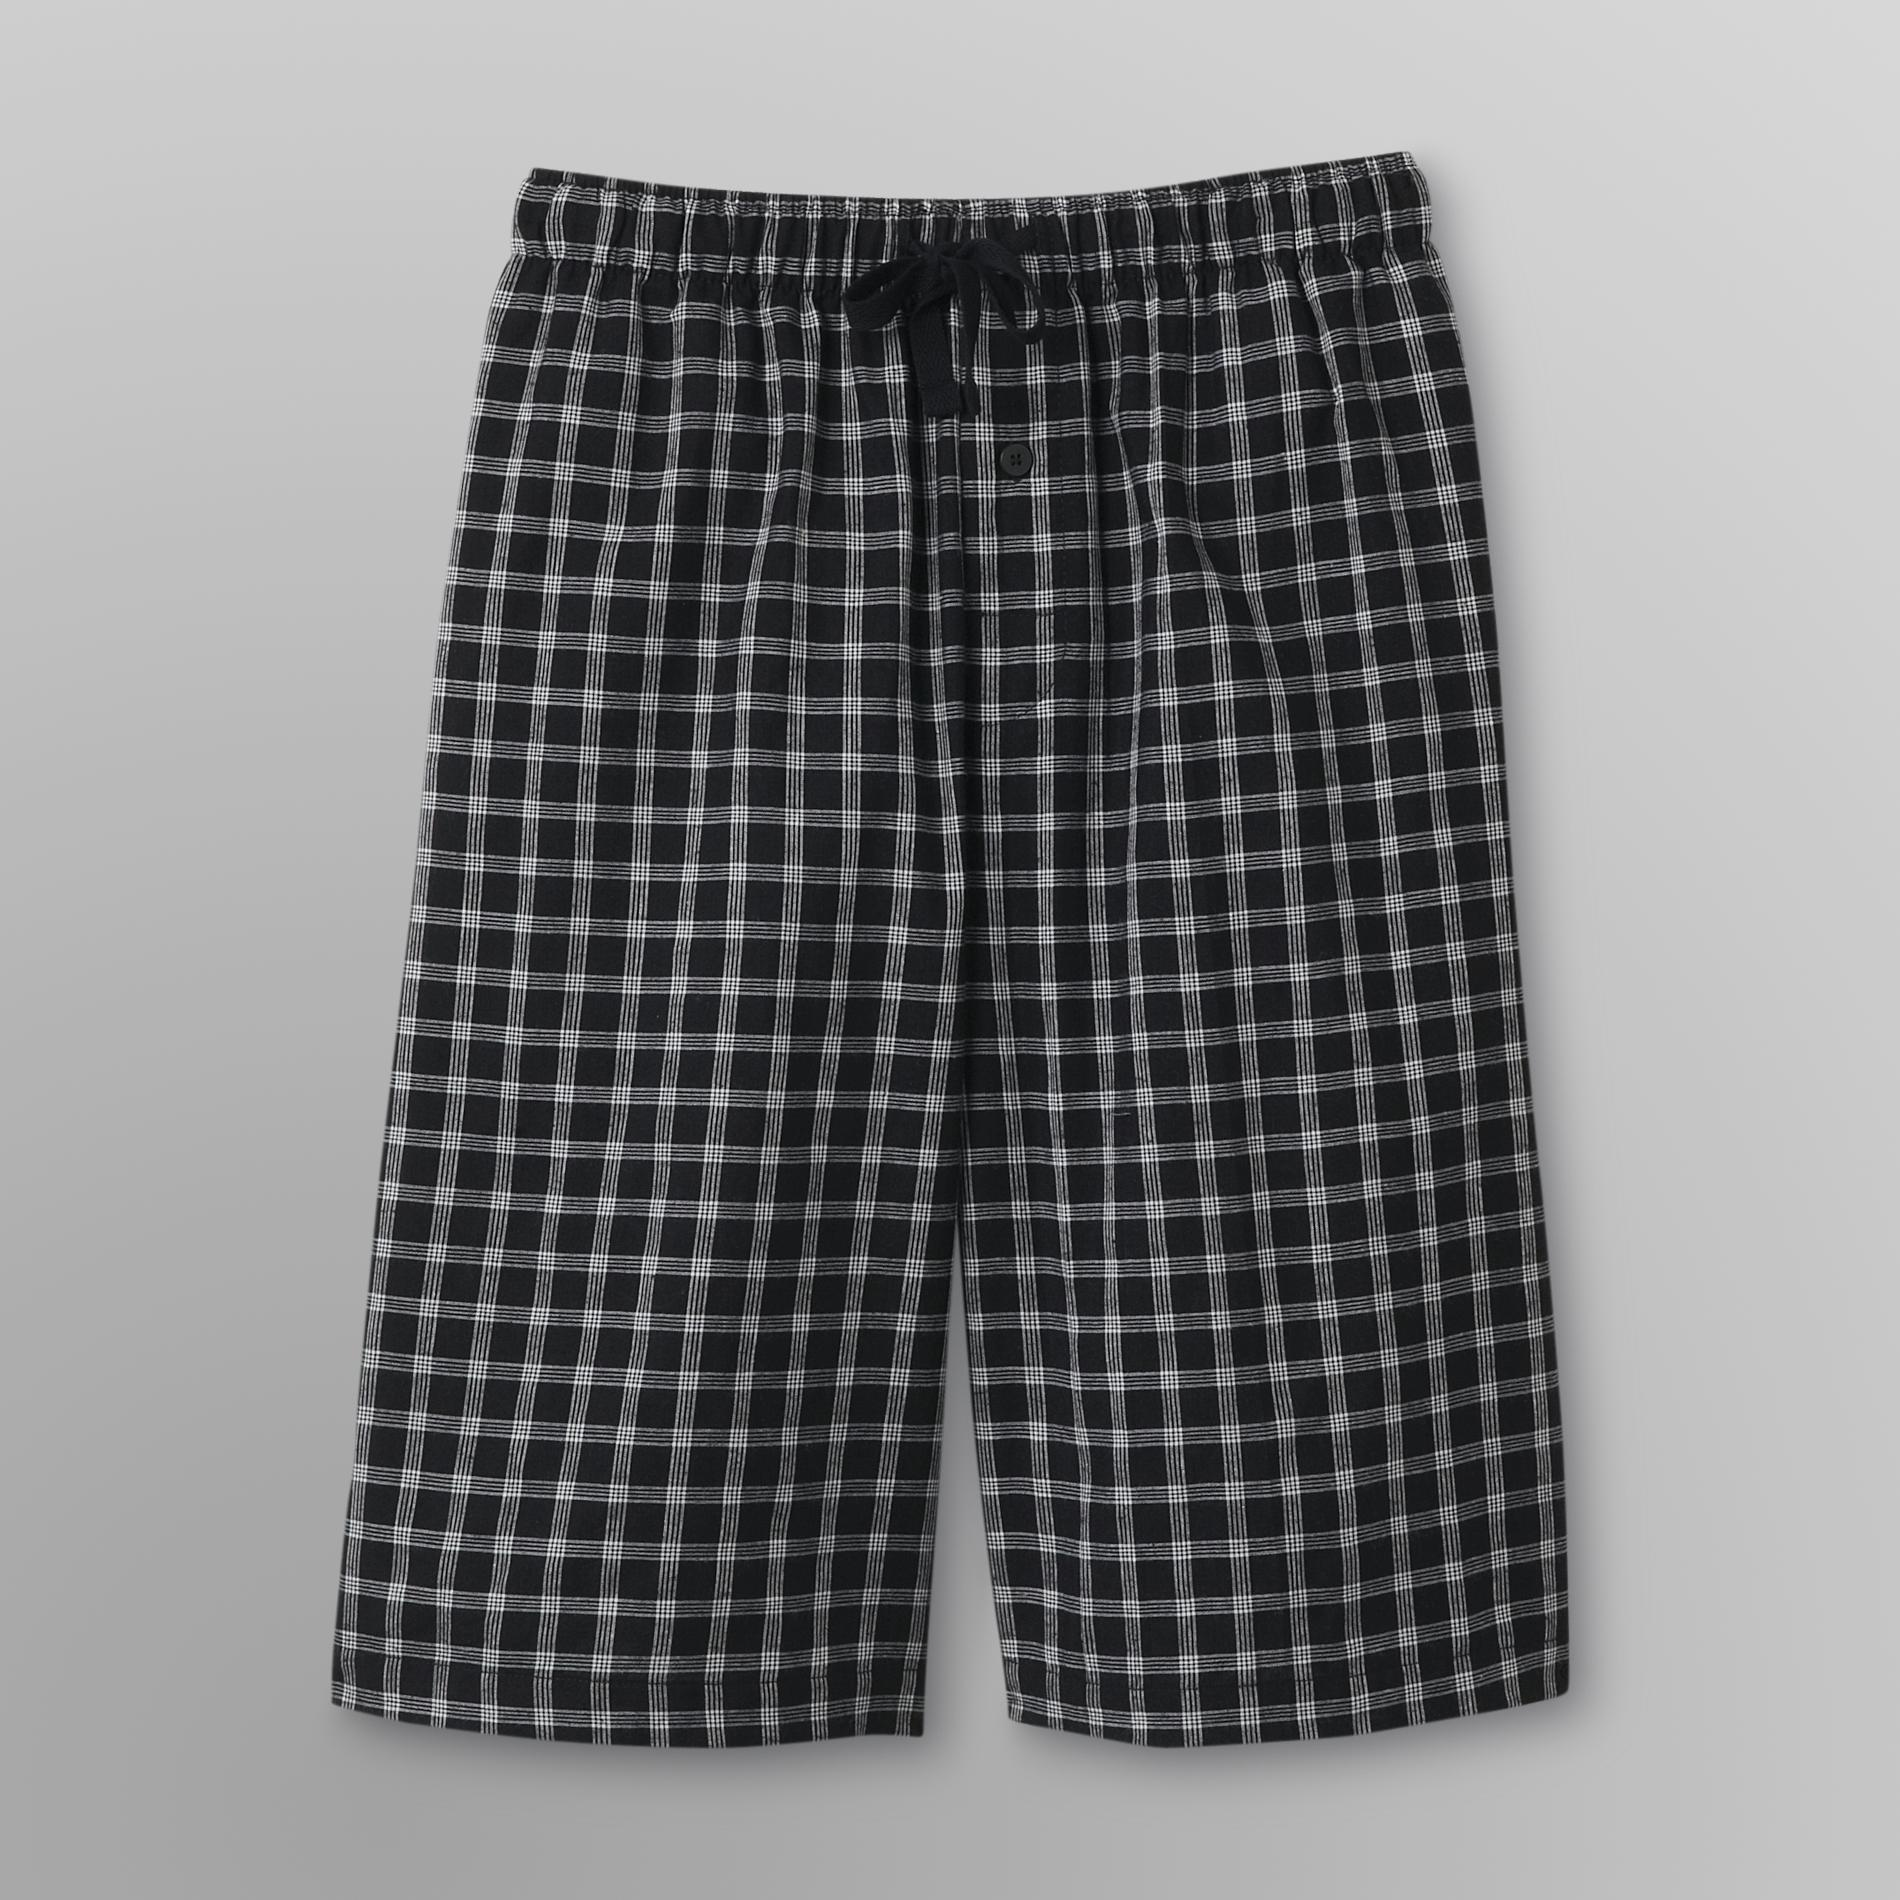 Basic Editions Men's Poplin Pajama Shorts - Plaid at Kmart.com